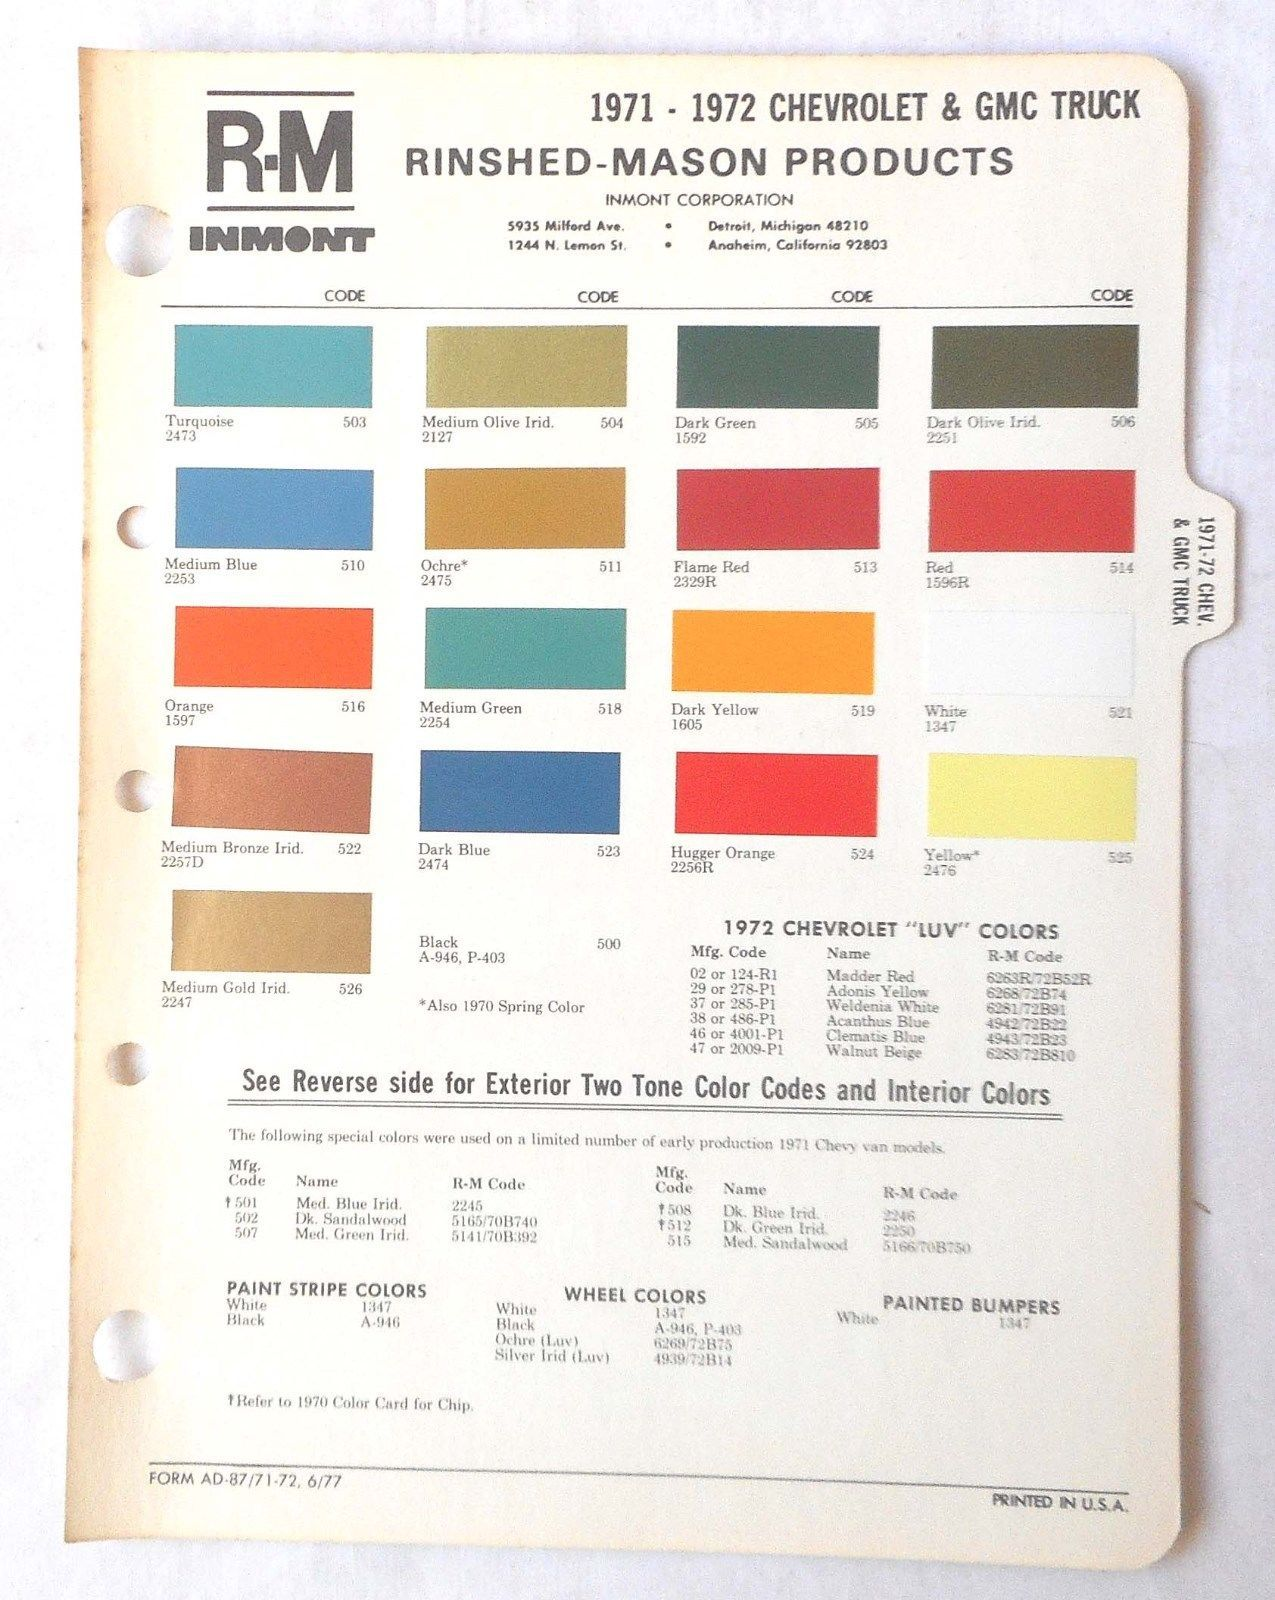 1971 1972 chevrolet truck and gmc r m color paint chip chart all models ebay [ 1275 x 1600 Pixel ]